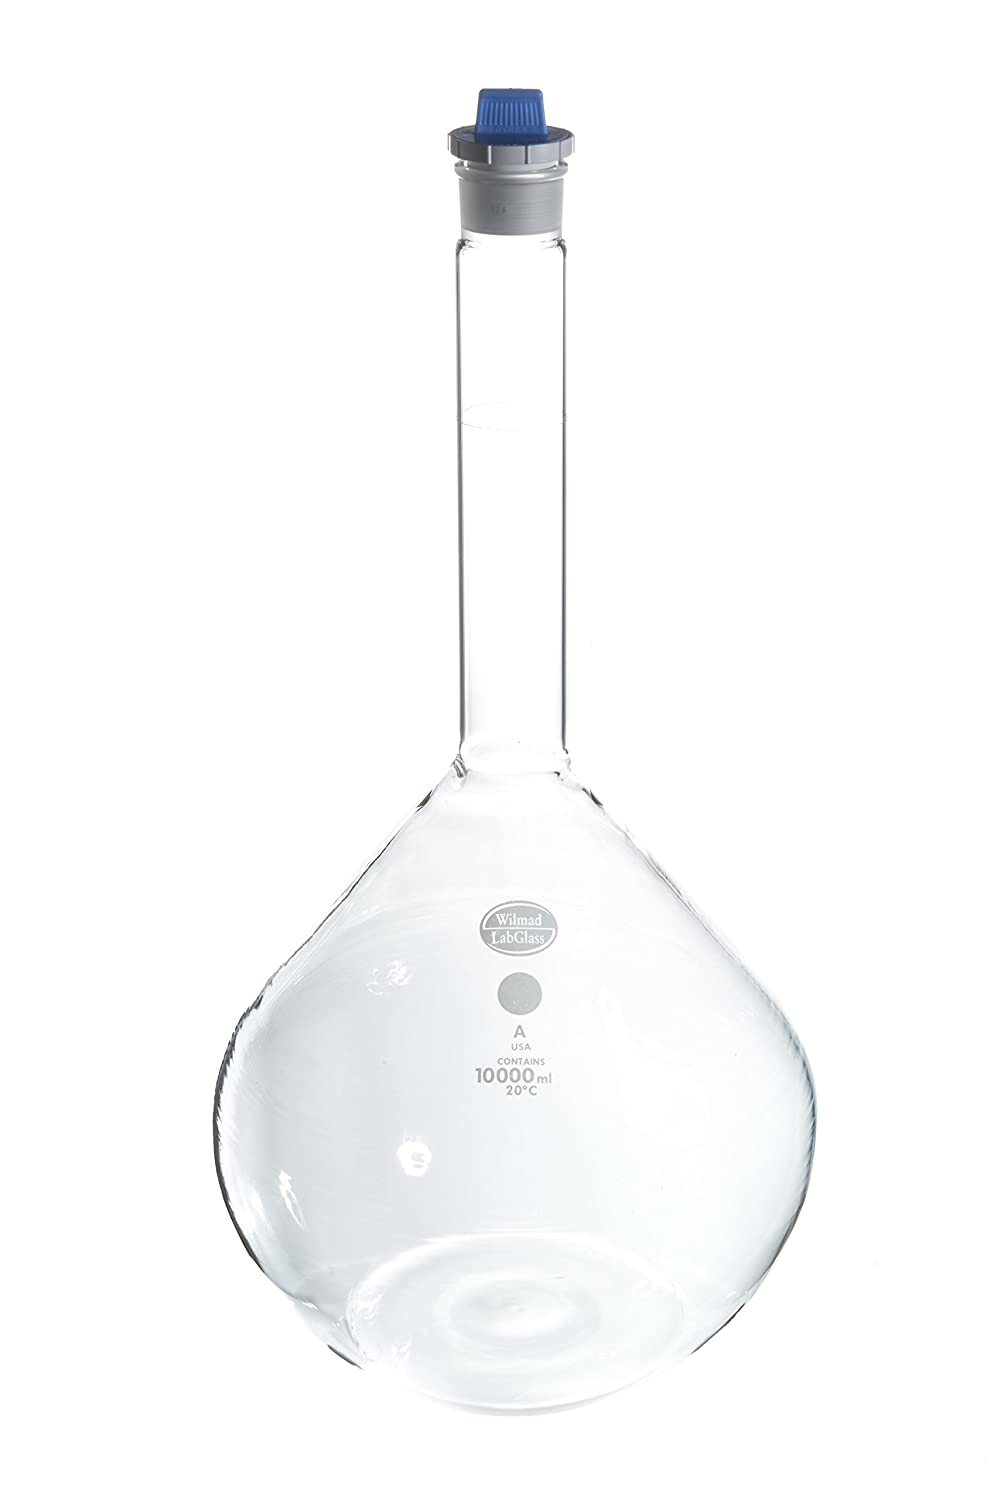 Wilmad-LabGlass LG-8116-132 Class A Volumetric Flask Size 38 Plastic Stopper 10000mL TC